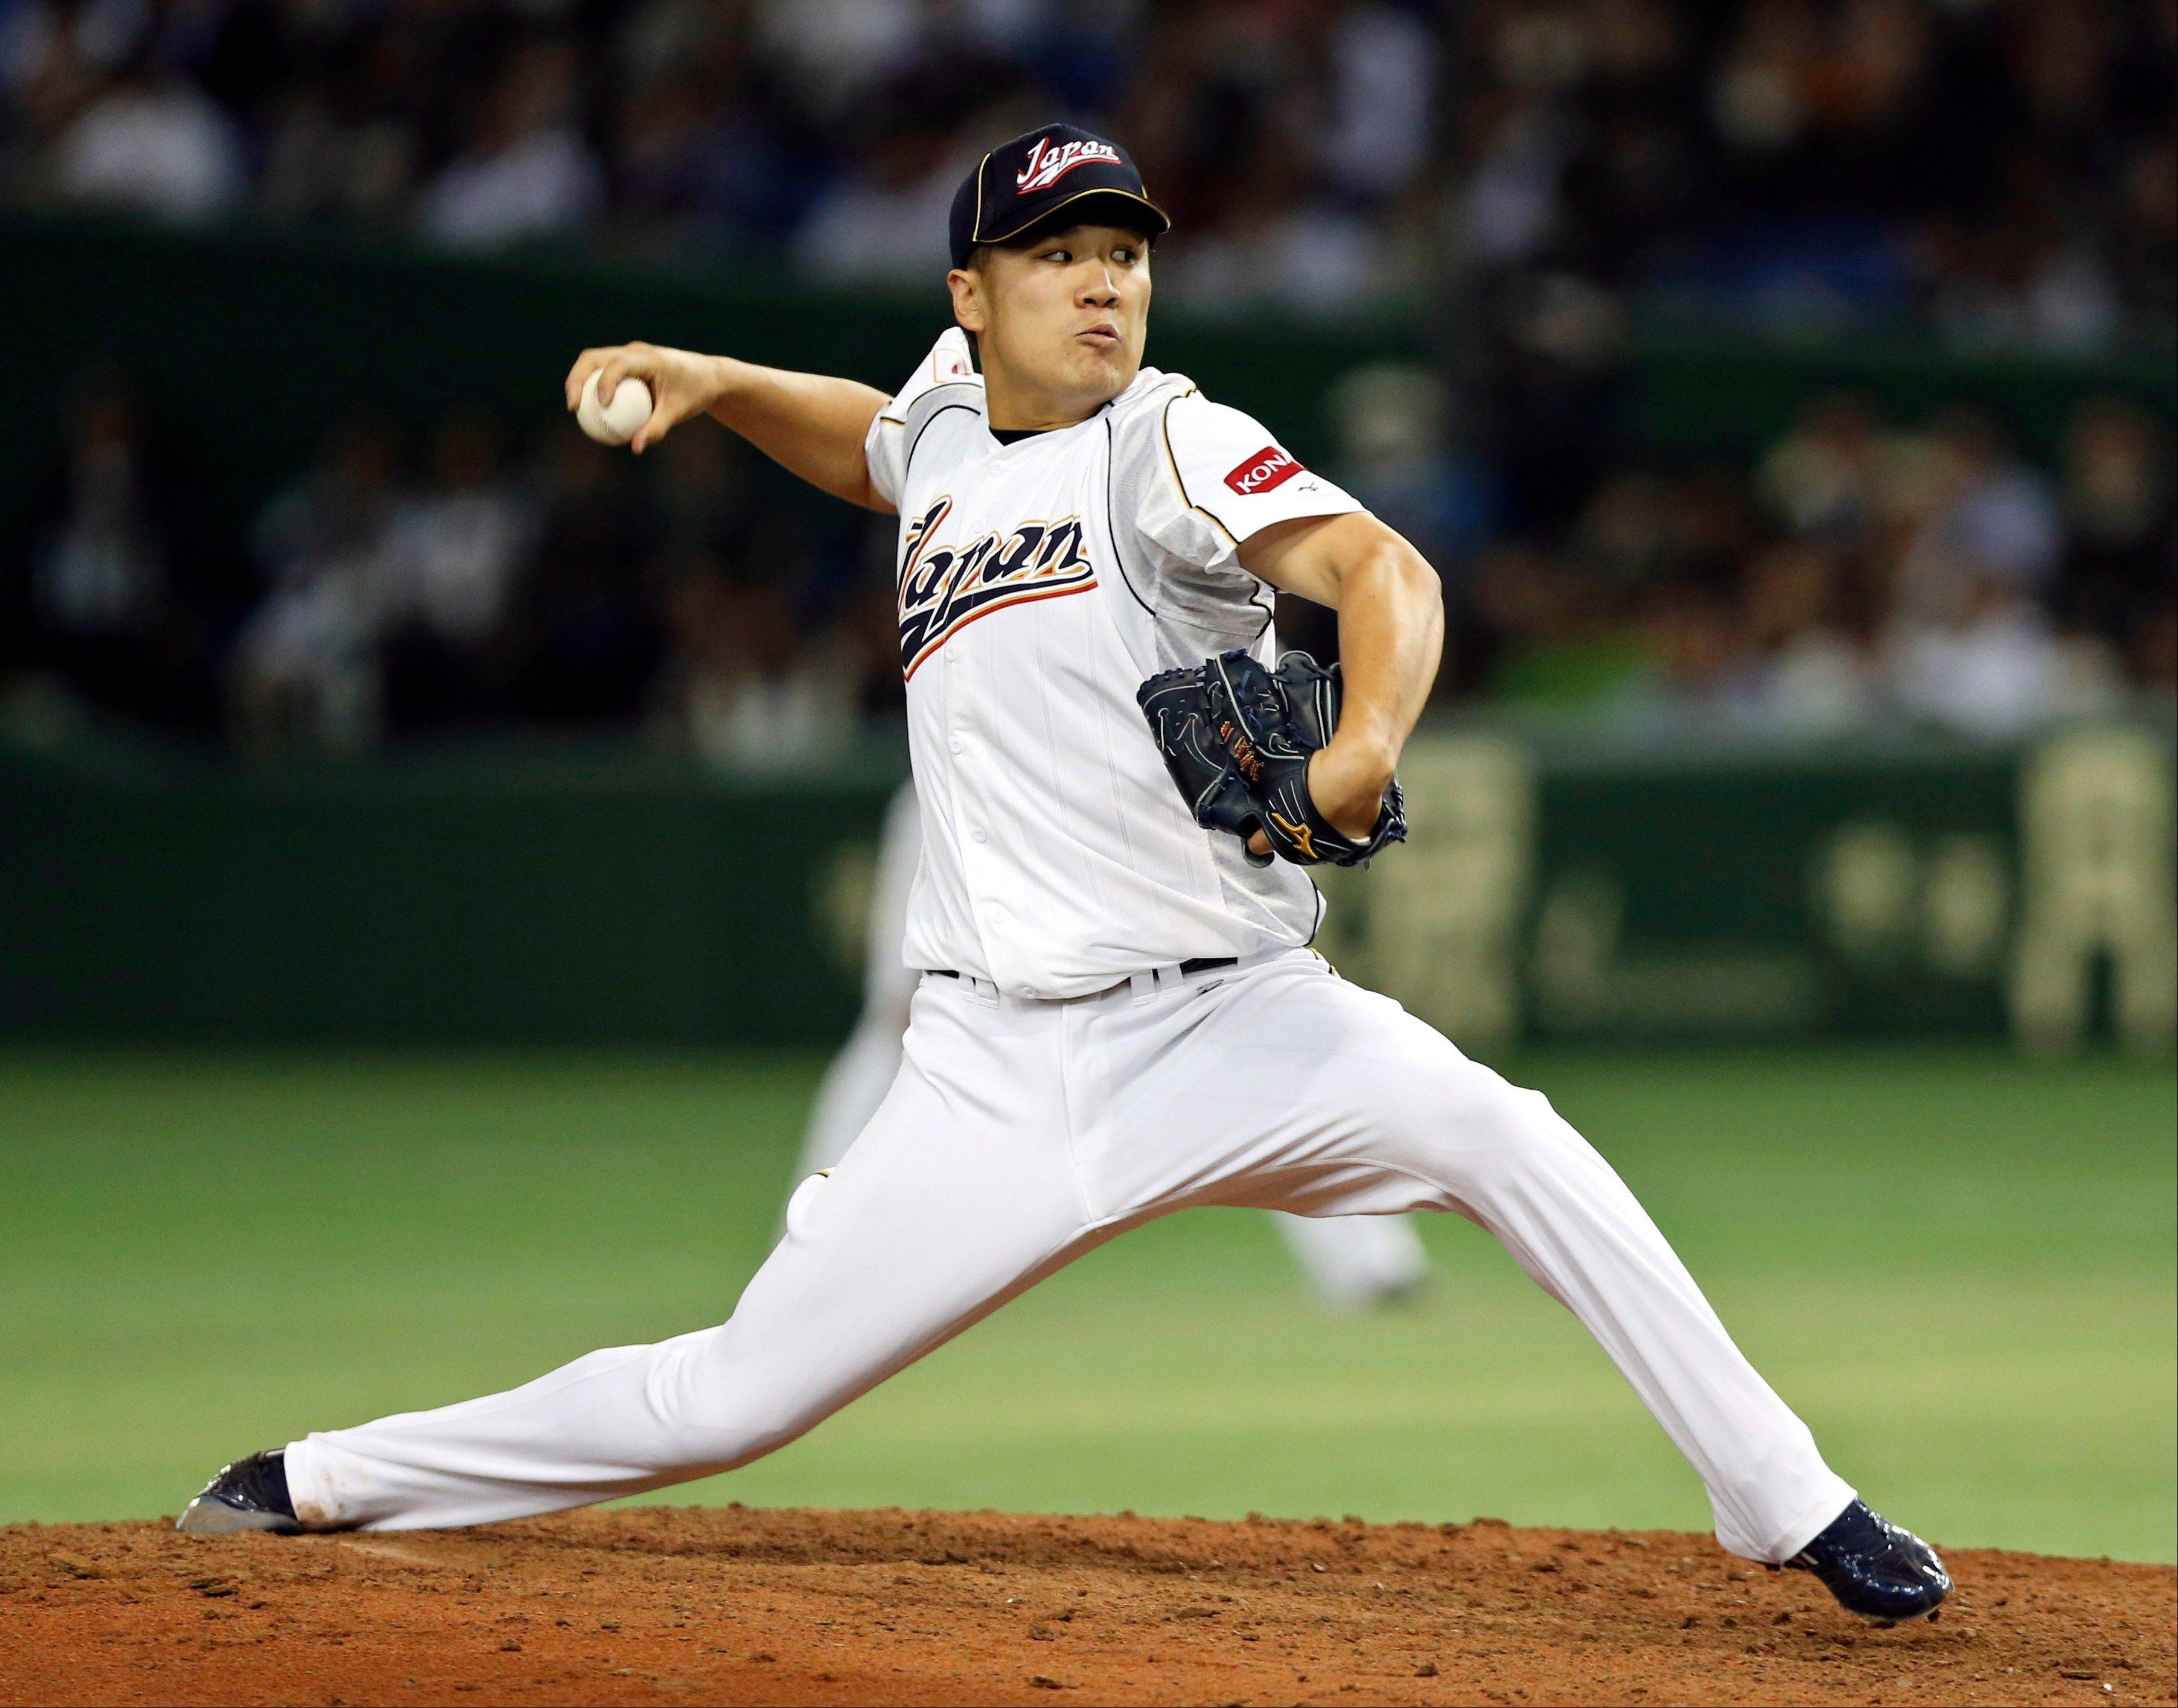 Japan's Masahiro Tanaka and the New York Yankees agreed Wednesday to a $155 million, seven-year contract. In addition to the deal with the pitcher, the Yankees must pay a $20 million fee to the Japanese team of the 25-year-old right-hander, the Rakuten Golden Eagles.